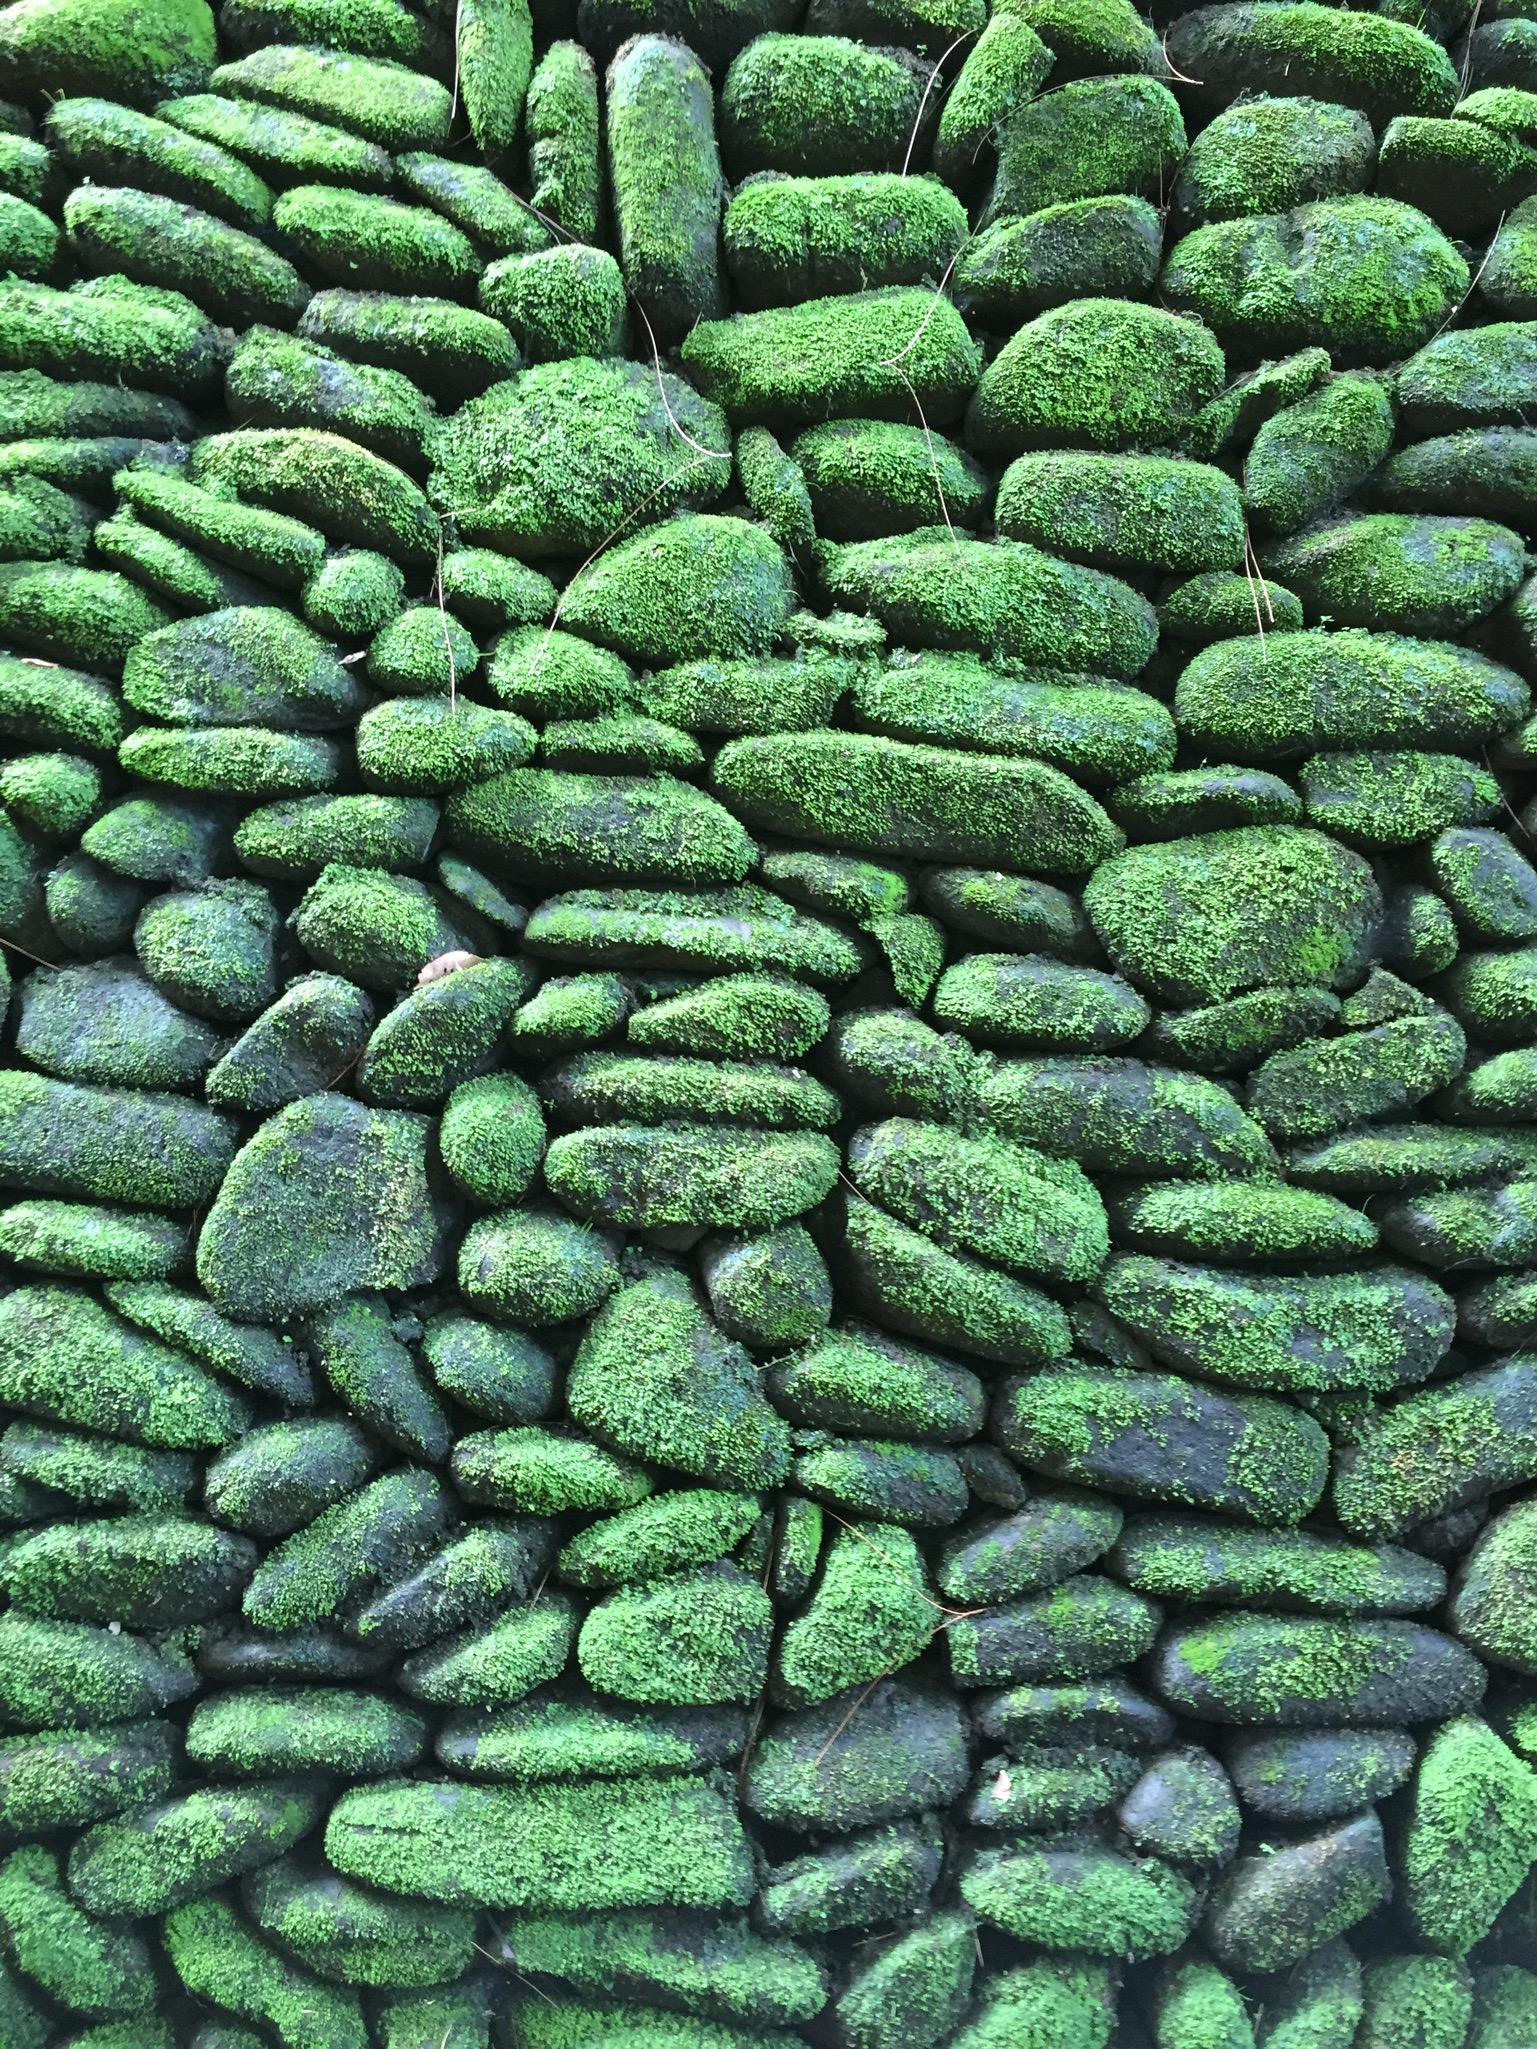 Moss covered rock wall at Tirta Empul healing waters temple.